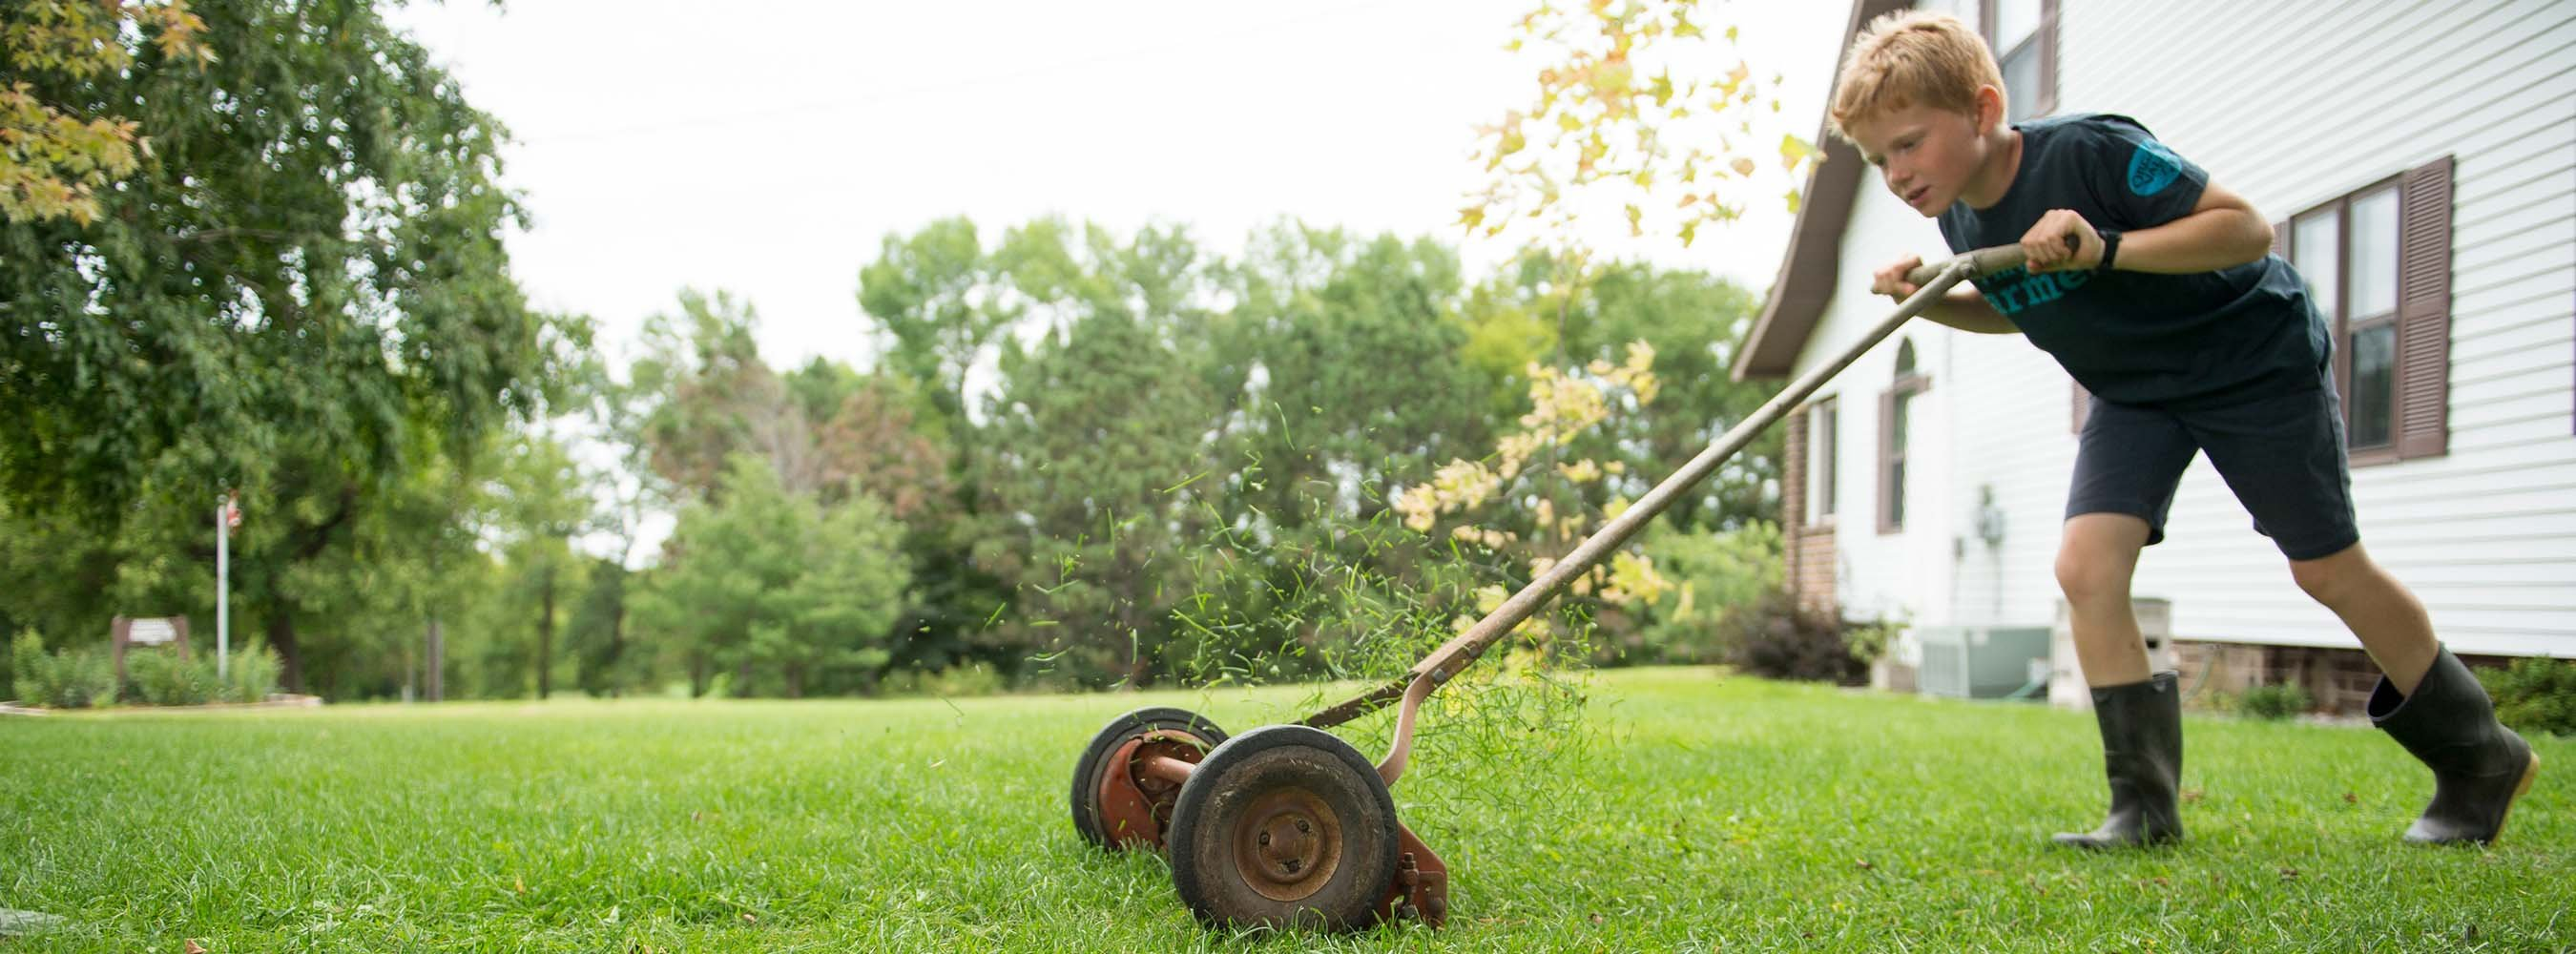 A young boy on the Elsenpeter family farm mowing the lawn